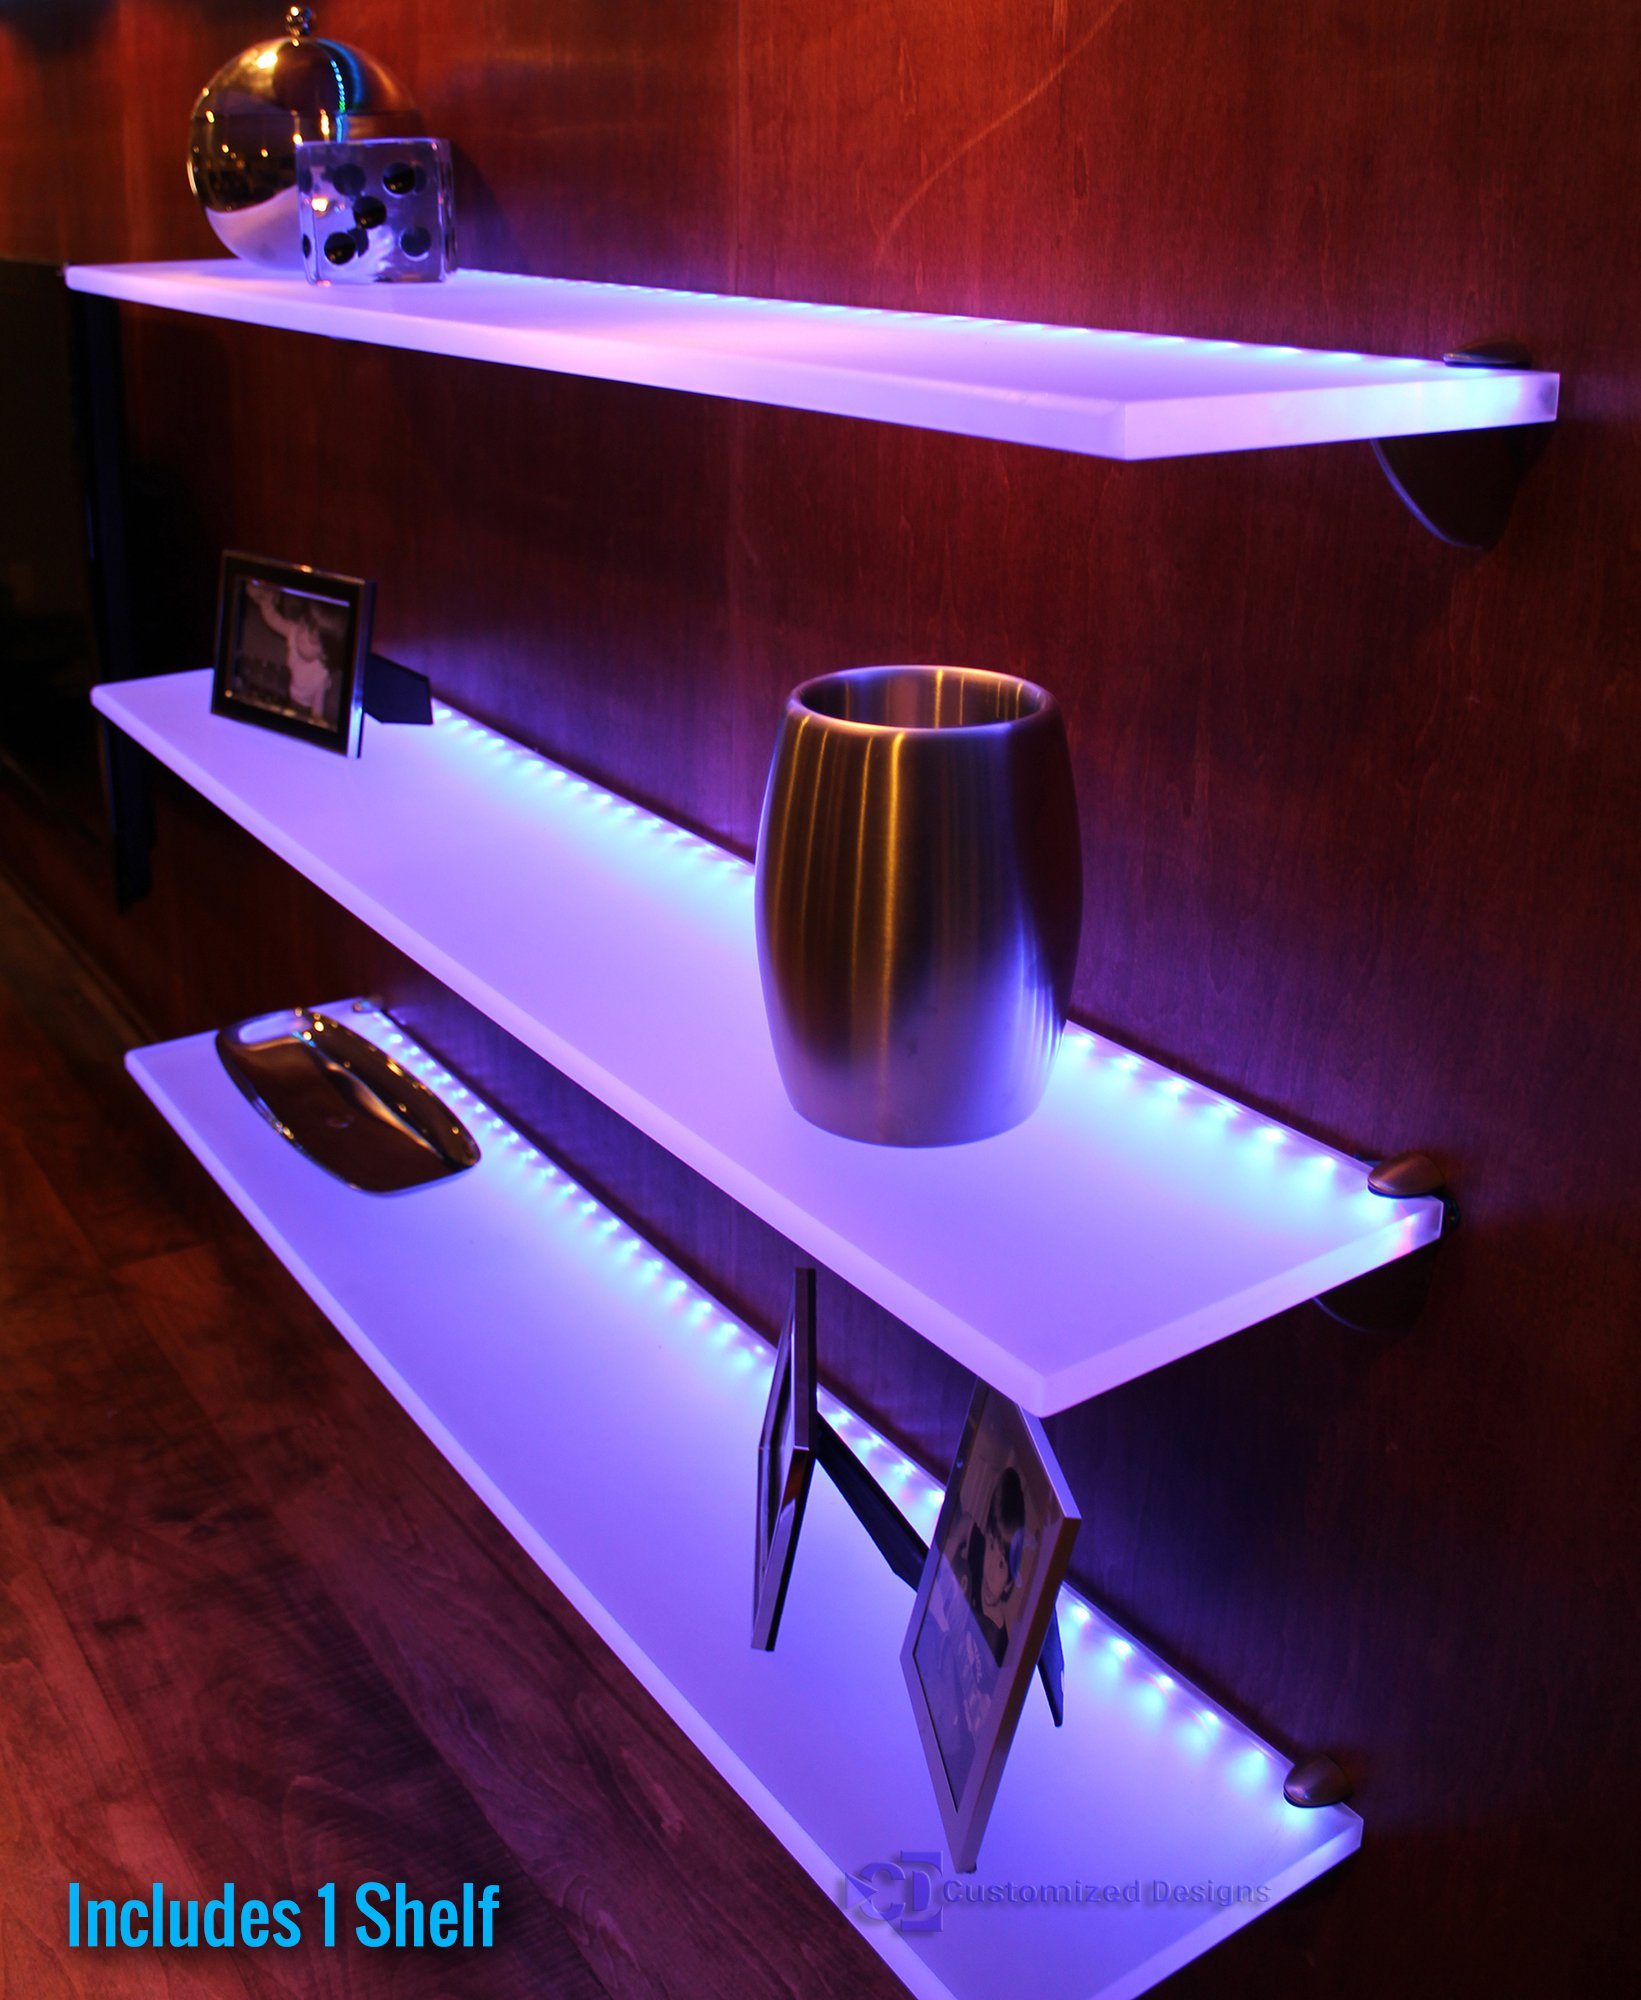 LED Lighted Floating Shelf - 2' Long x 4.5'' Deep (Shelf Only) by Customized Designs